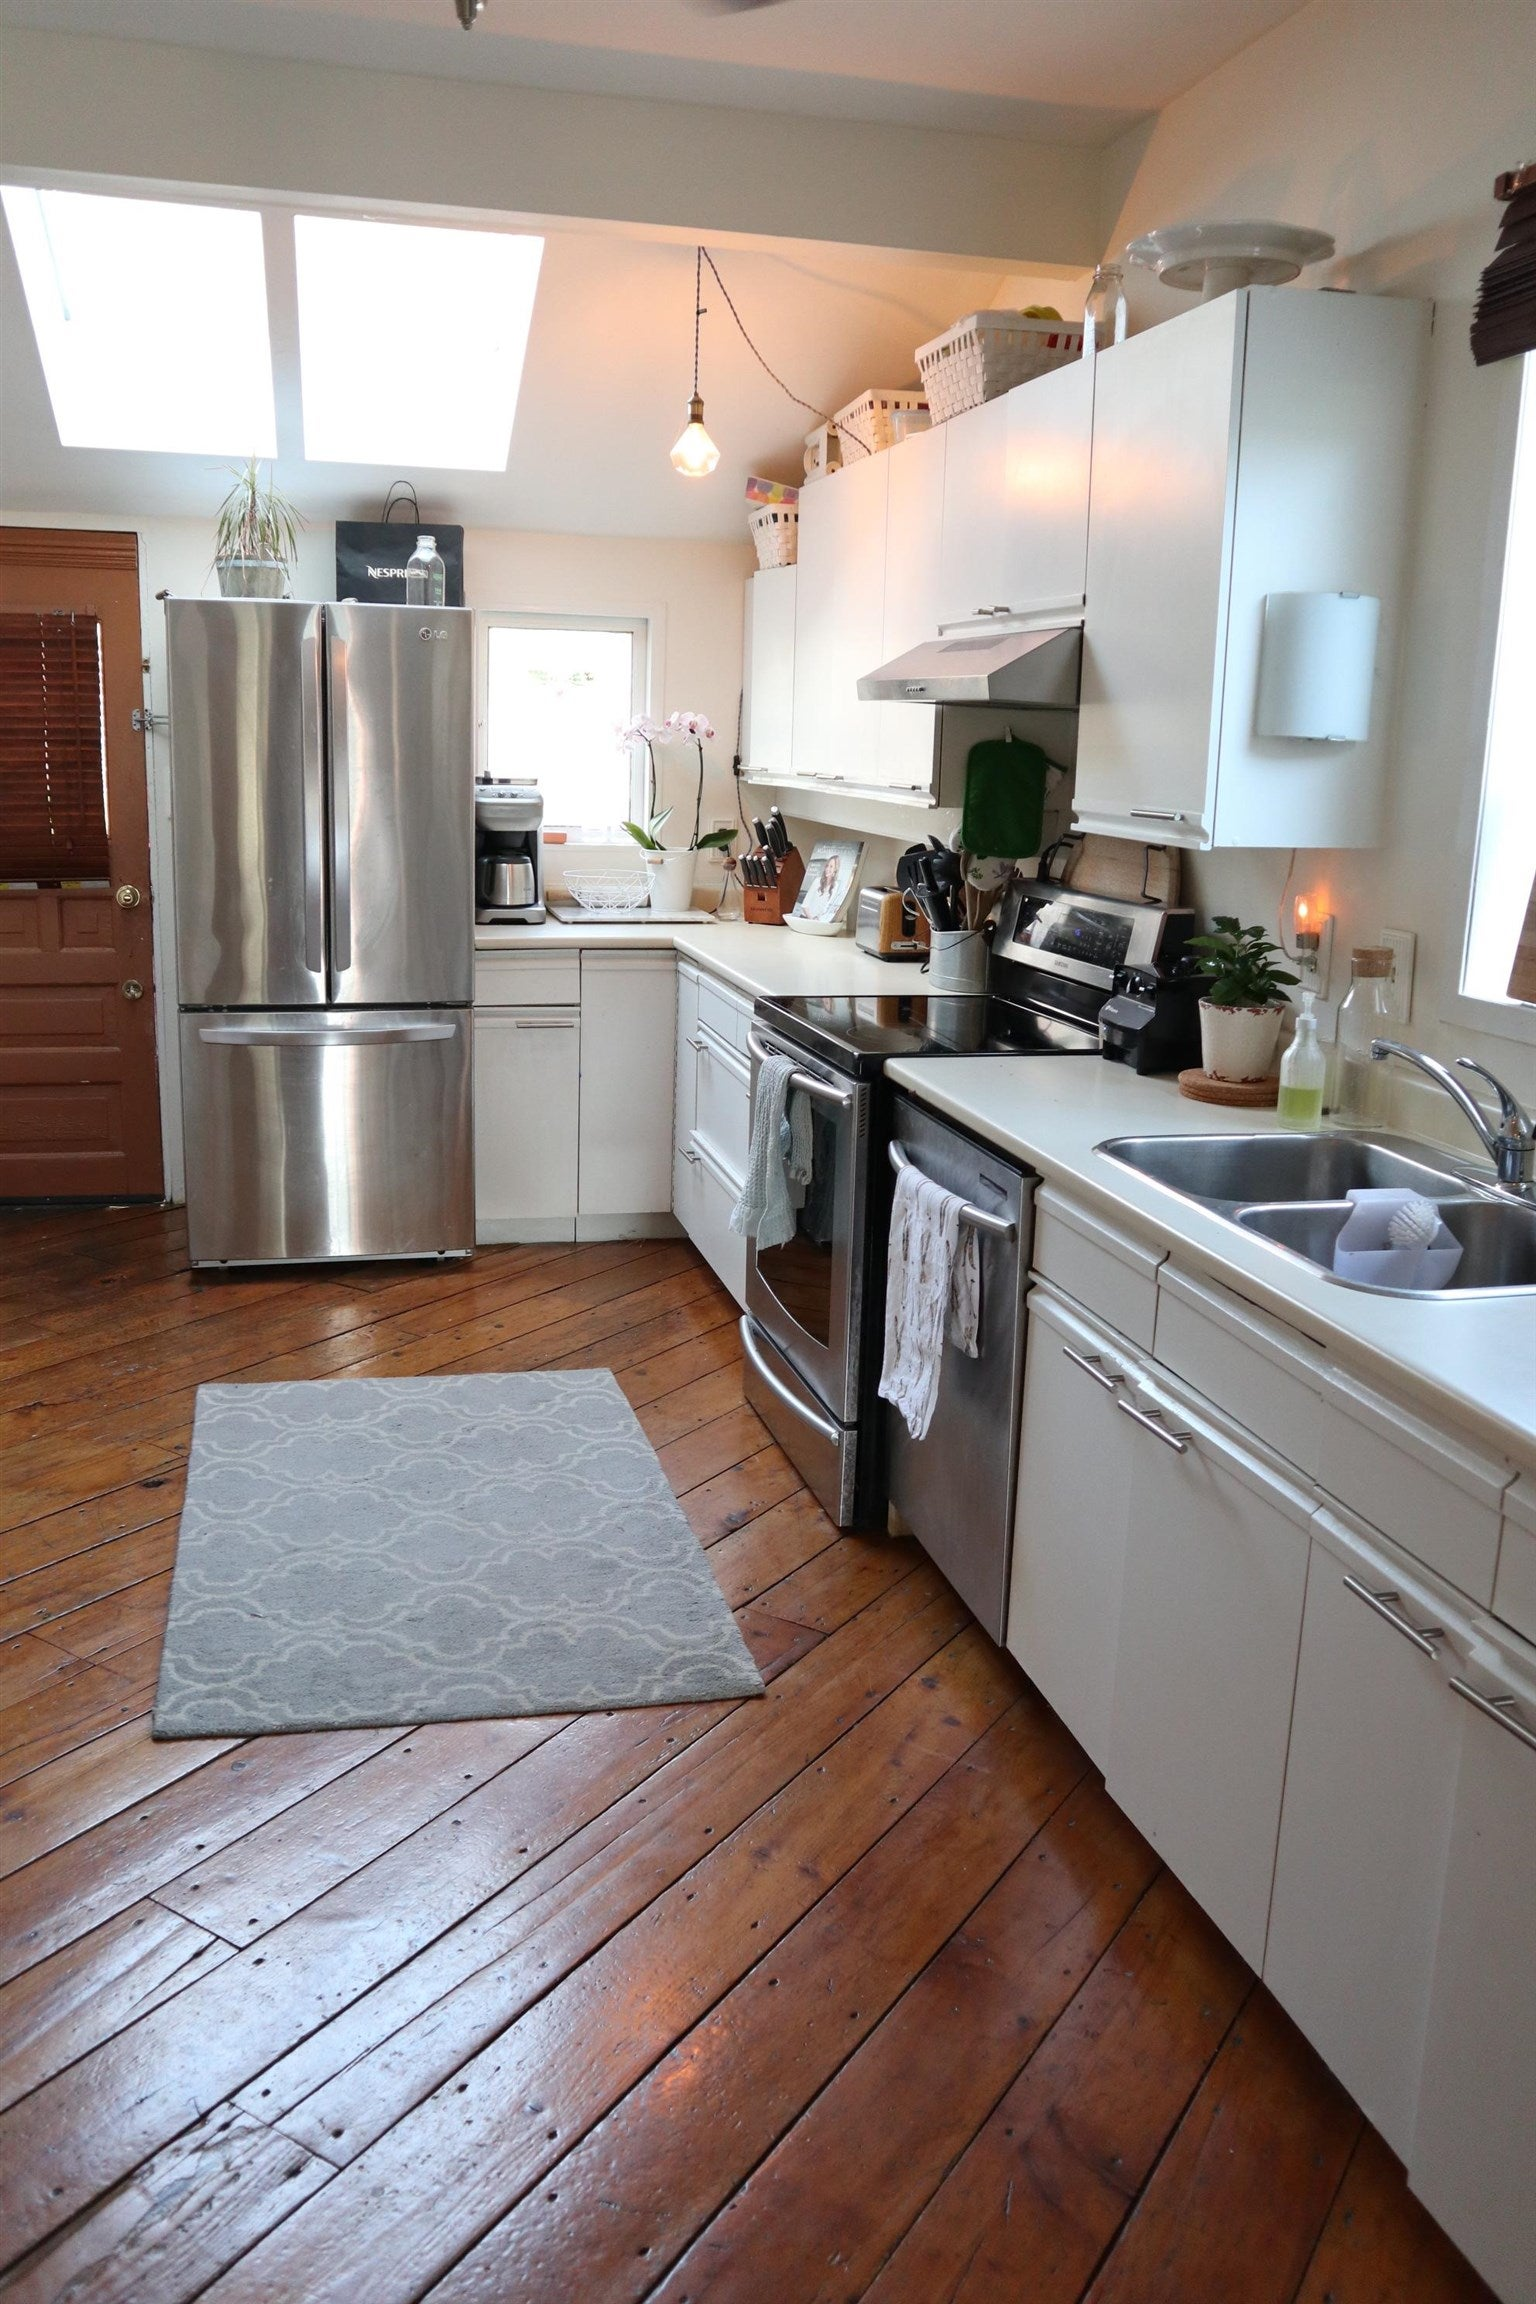 224 E 3RD STREET - Lower Lonsdale House/Single Family for sale, 2 Bedrooms (R2622022) - #5